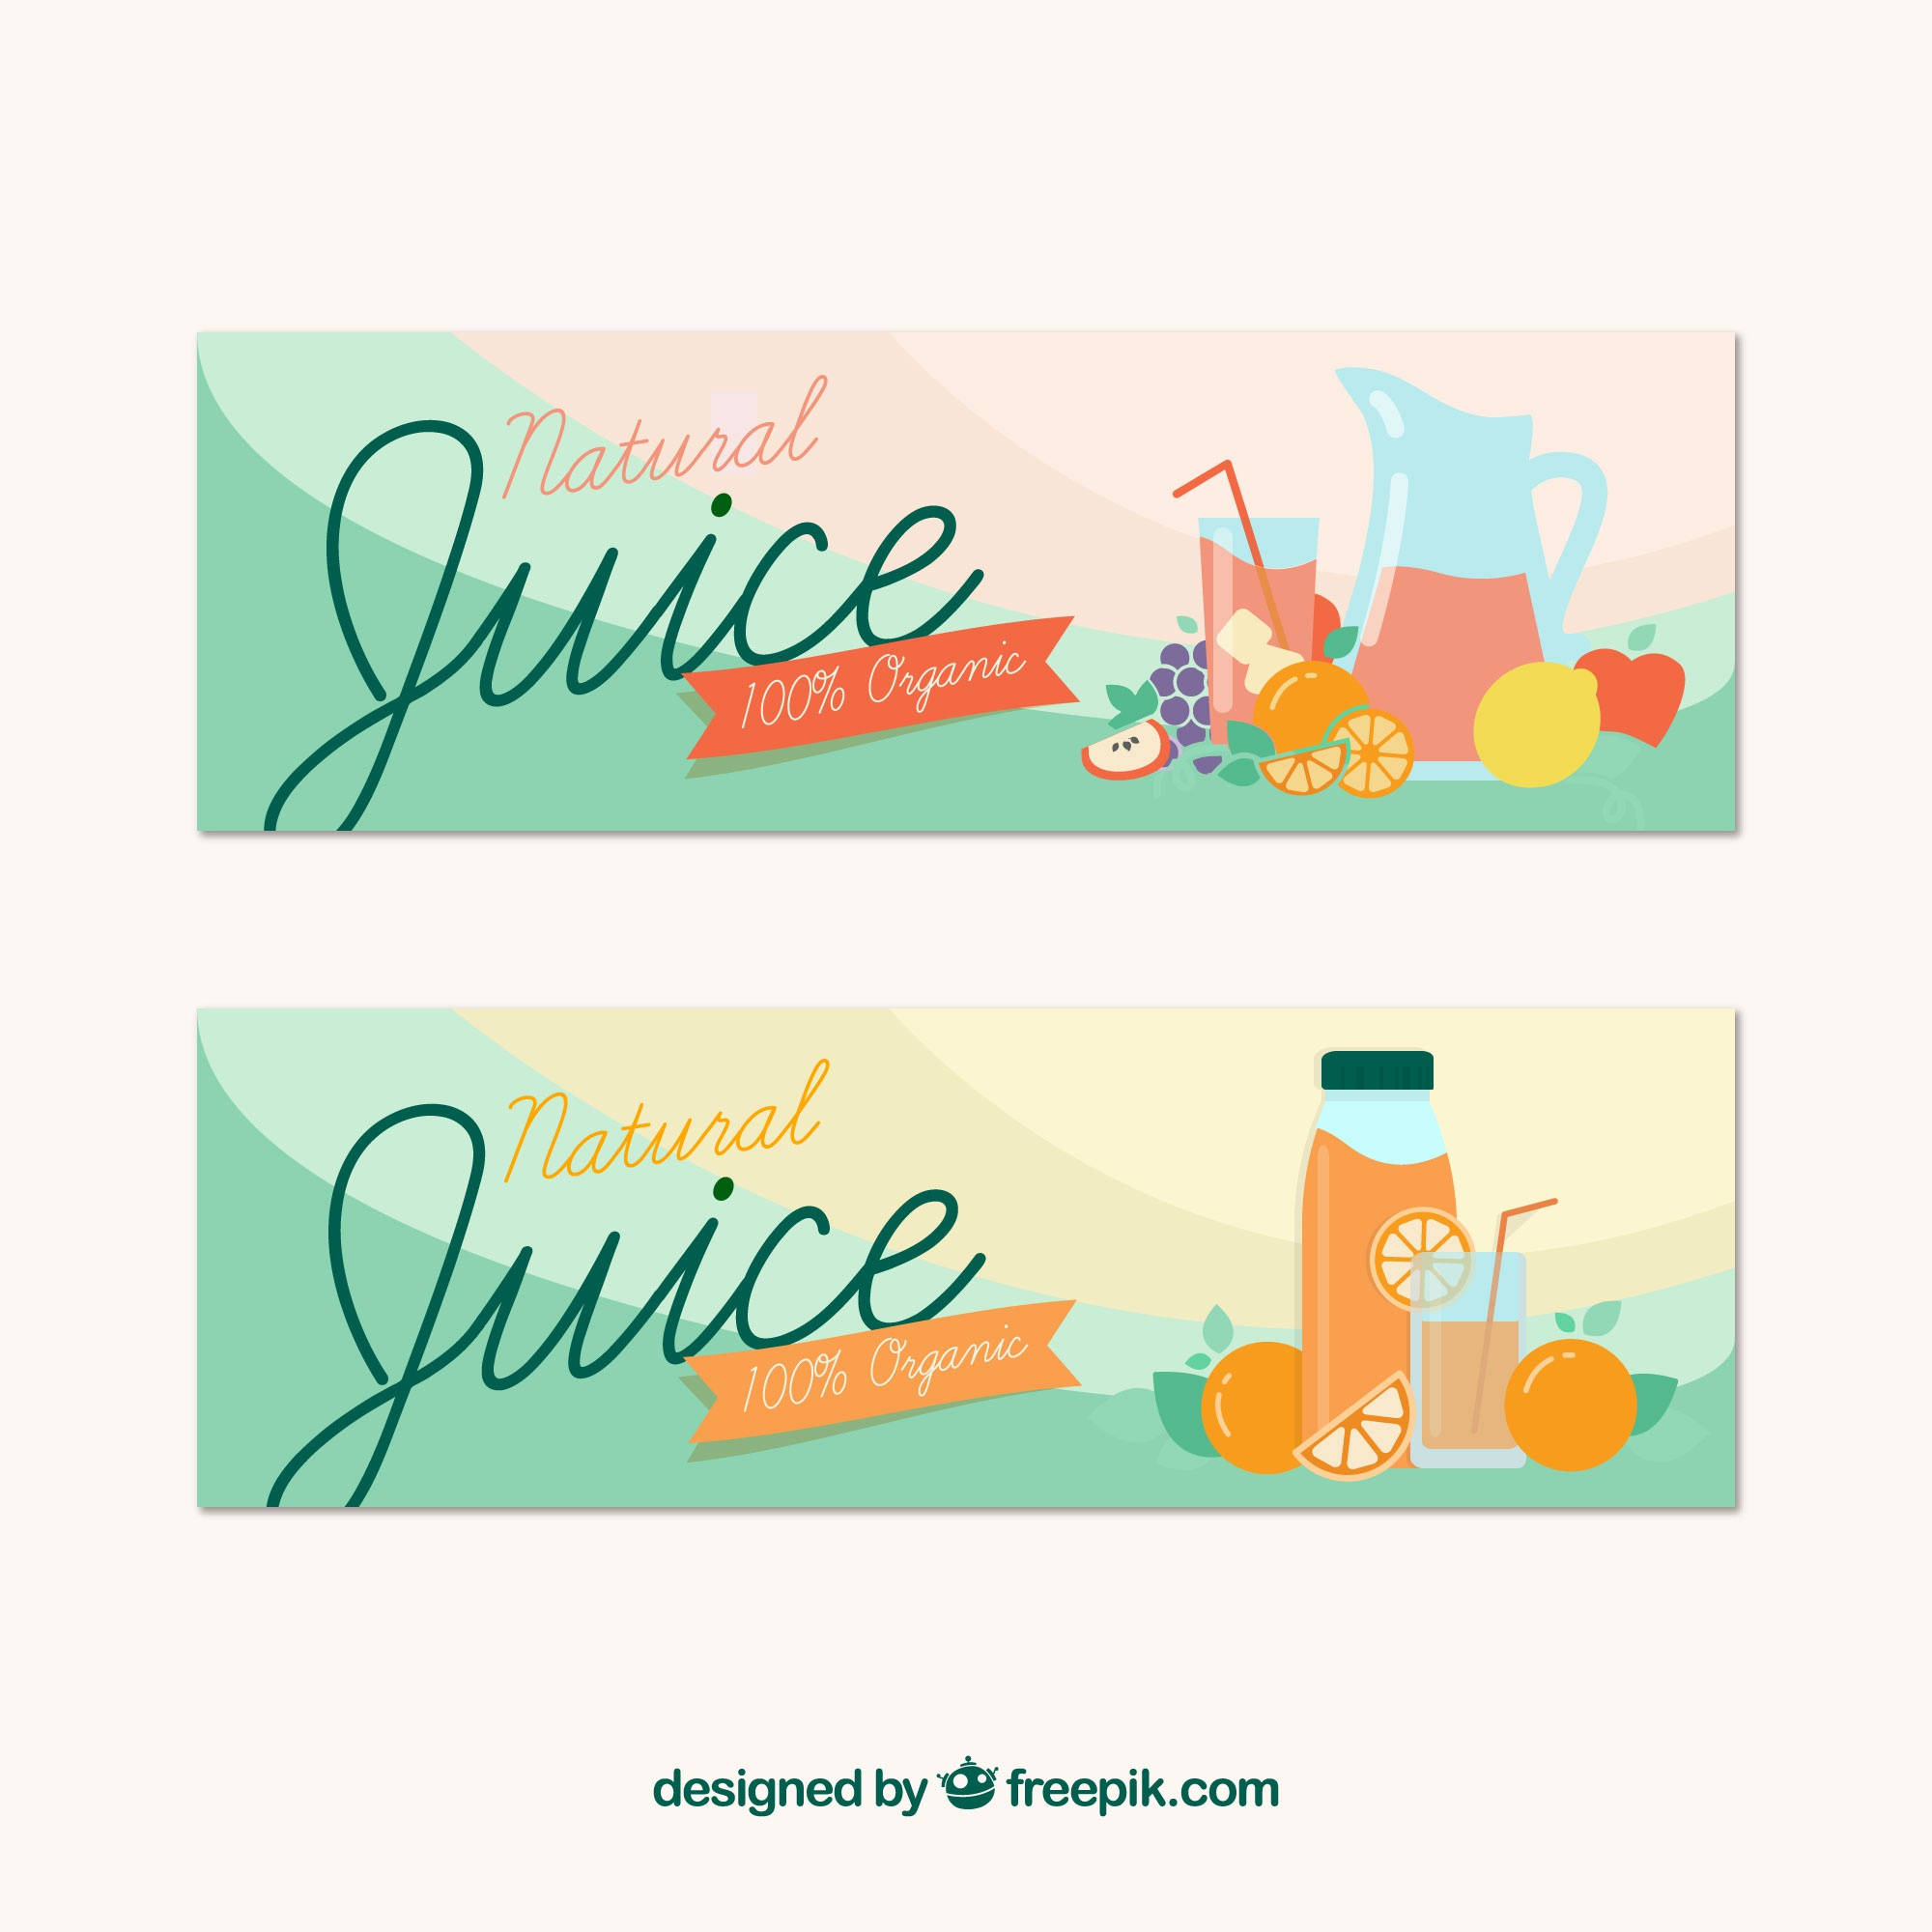 Fantastic banners with natural fruit juices